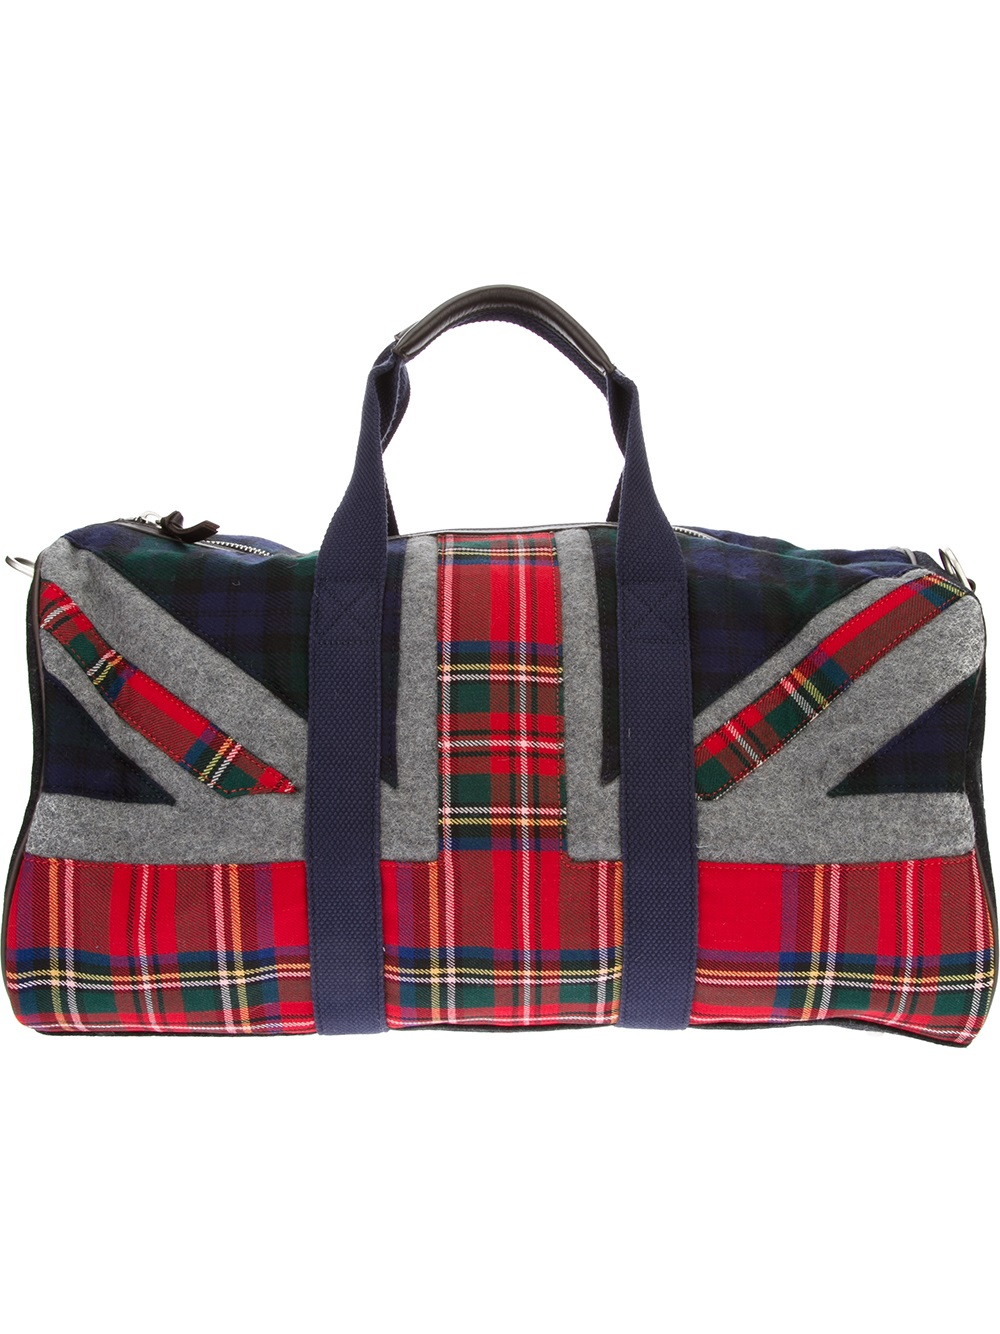 ee48bf45de5a Lyst - Hackett Union Jack Duffle Bag in Red for Men